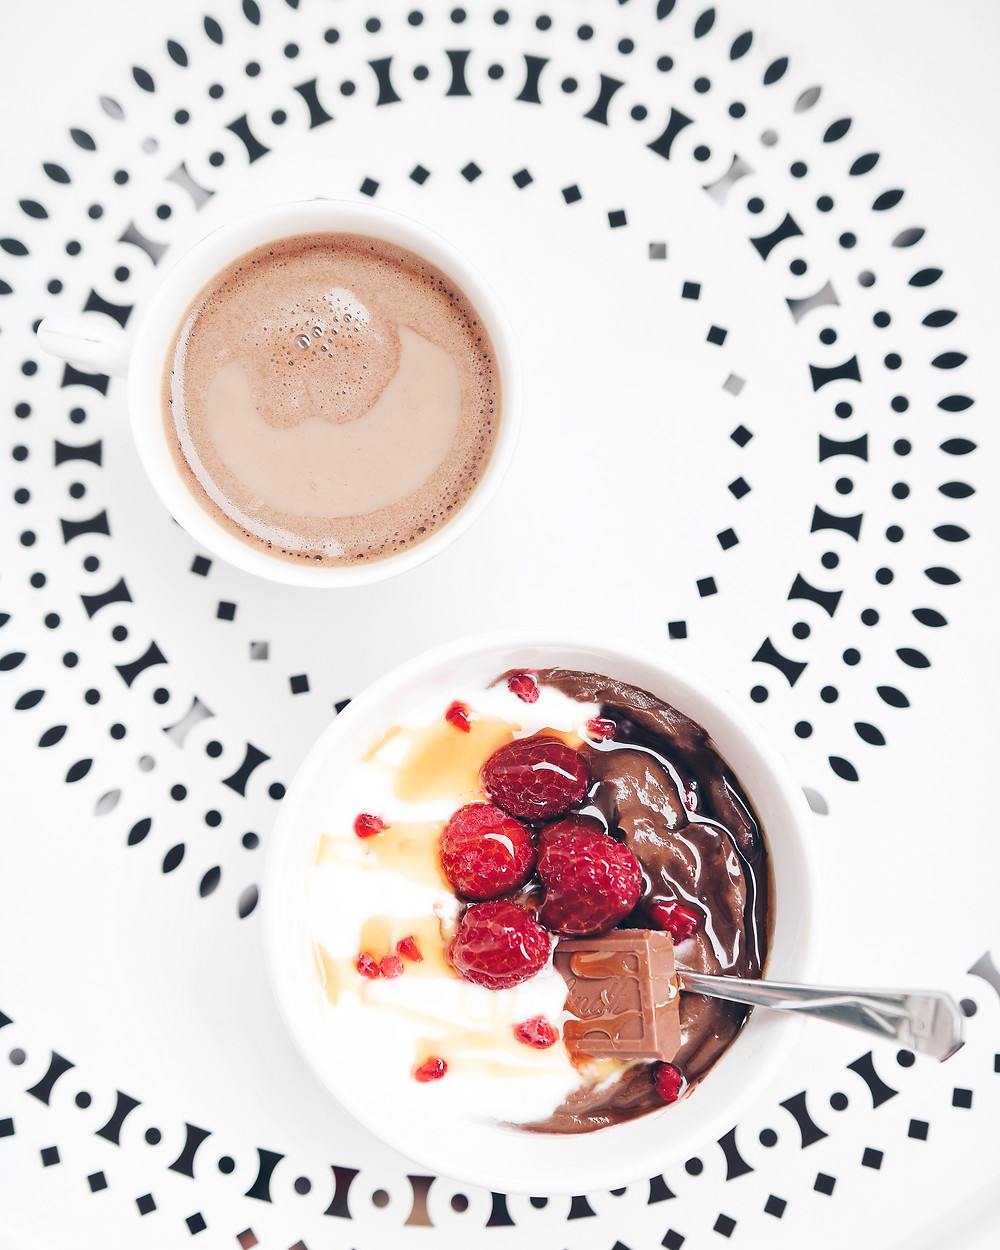 Birds eye view of a white table. Coffee with milk is in the upper left corner. In the lower right corner there is a breakfast bowl wit chocolate avocado pudding and yogurt, raspberries, chocolate and honey.